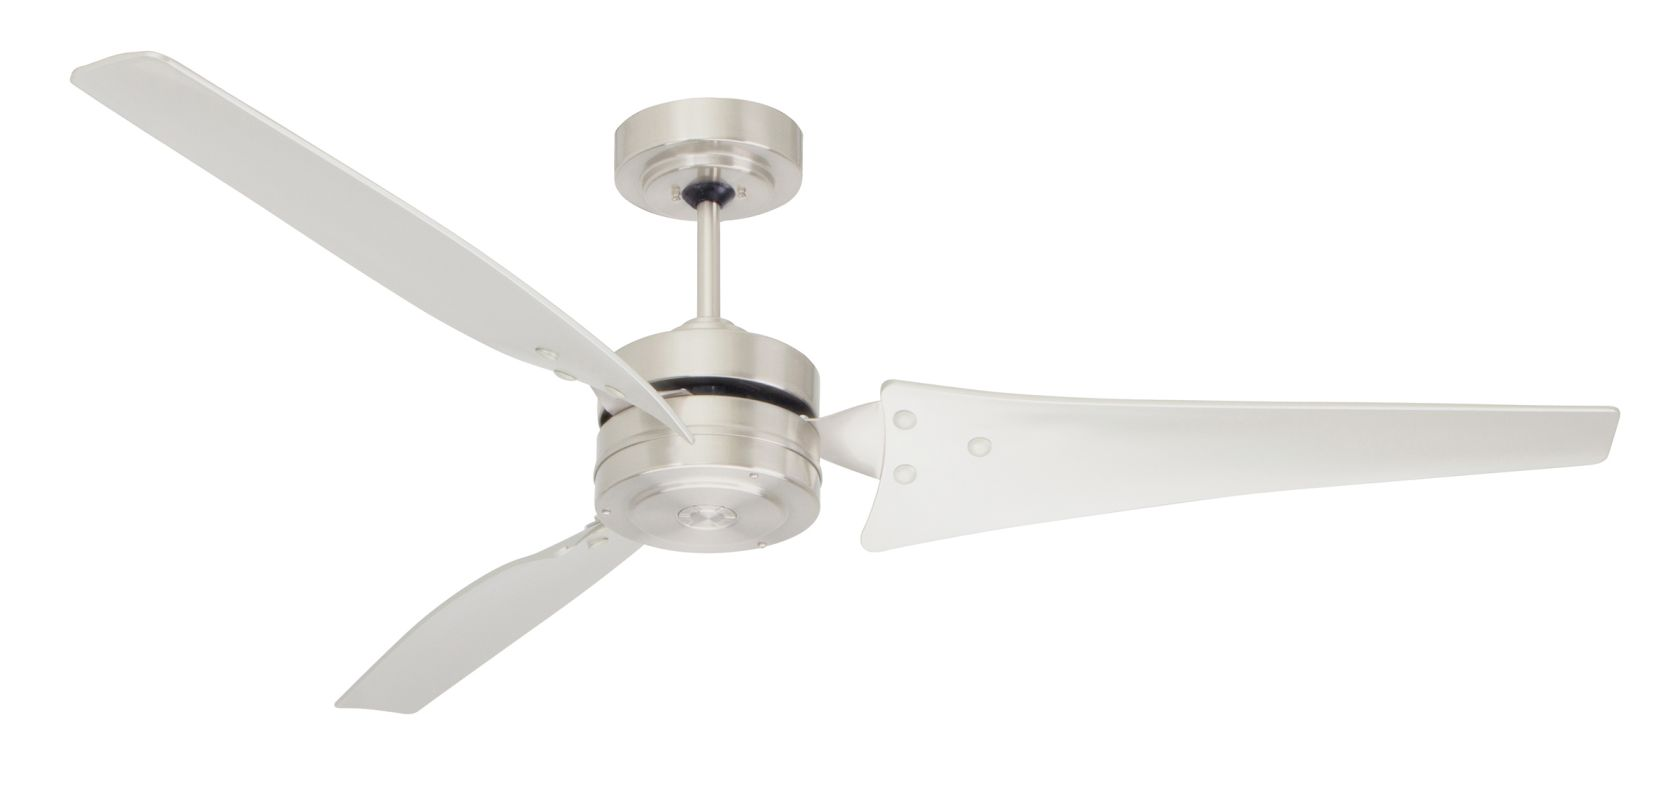 "Emerson CF765 Loft 60"" 3 Blade Ceiling Fan - Blades Included Brushed"